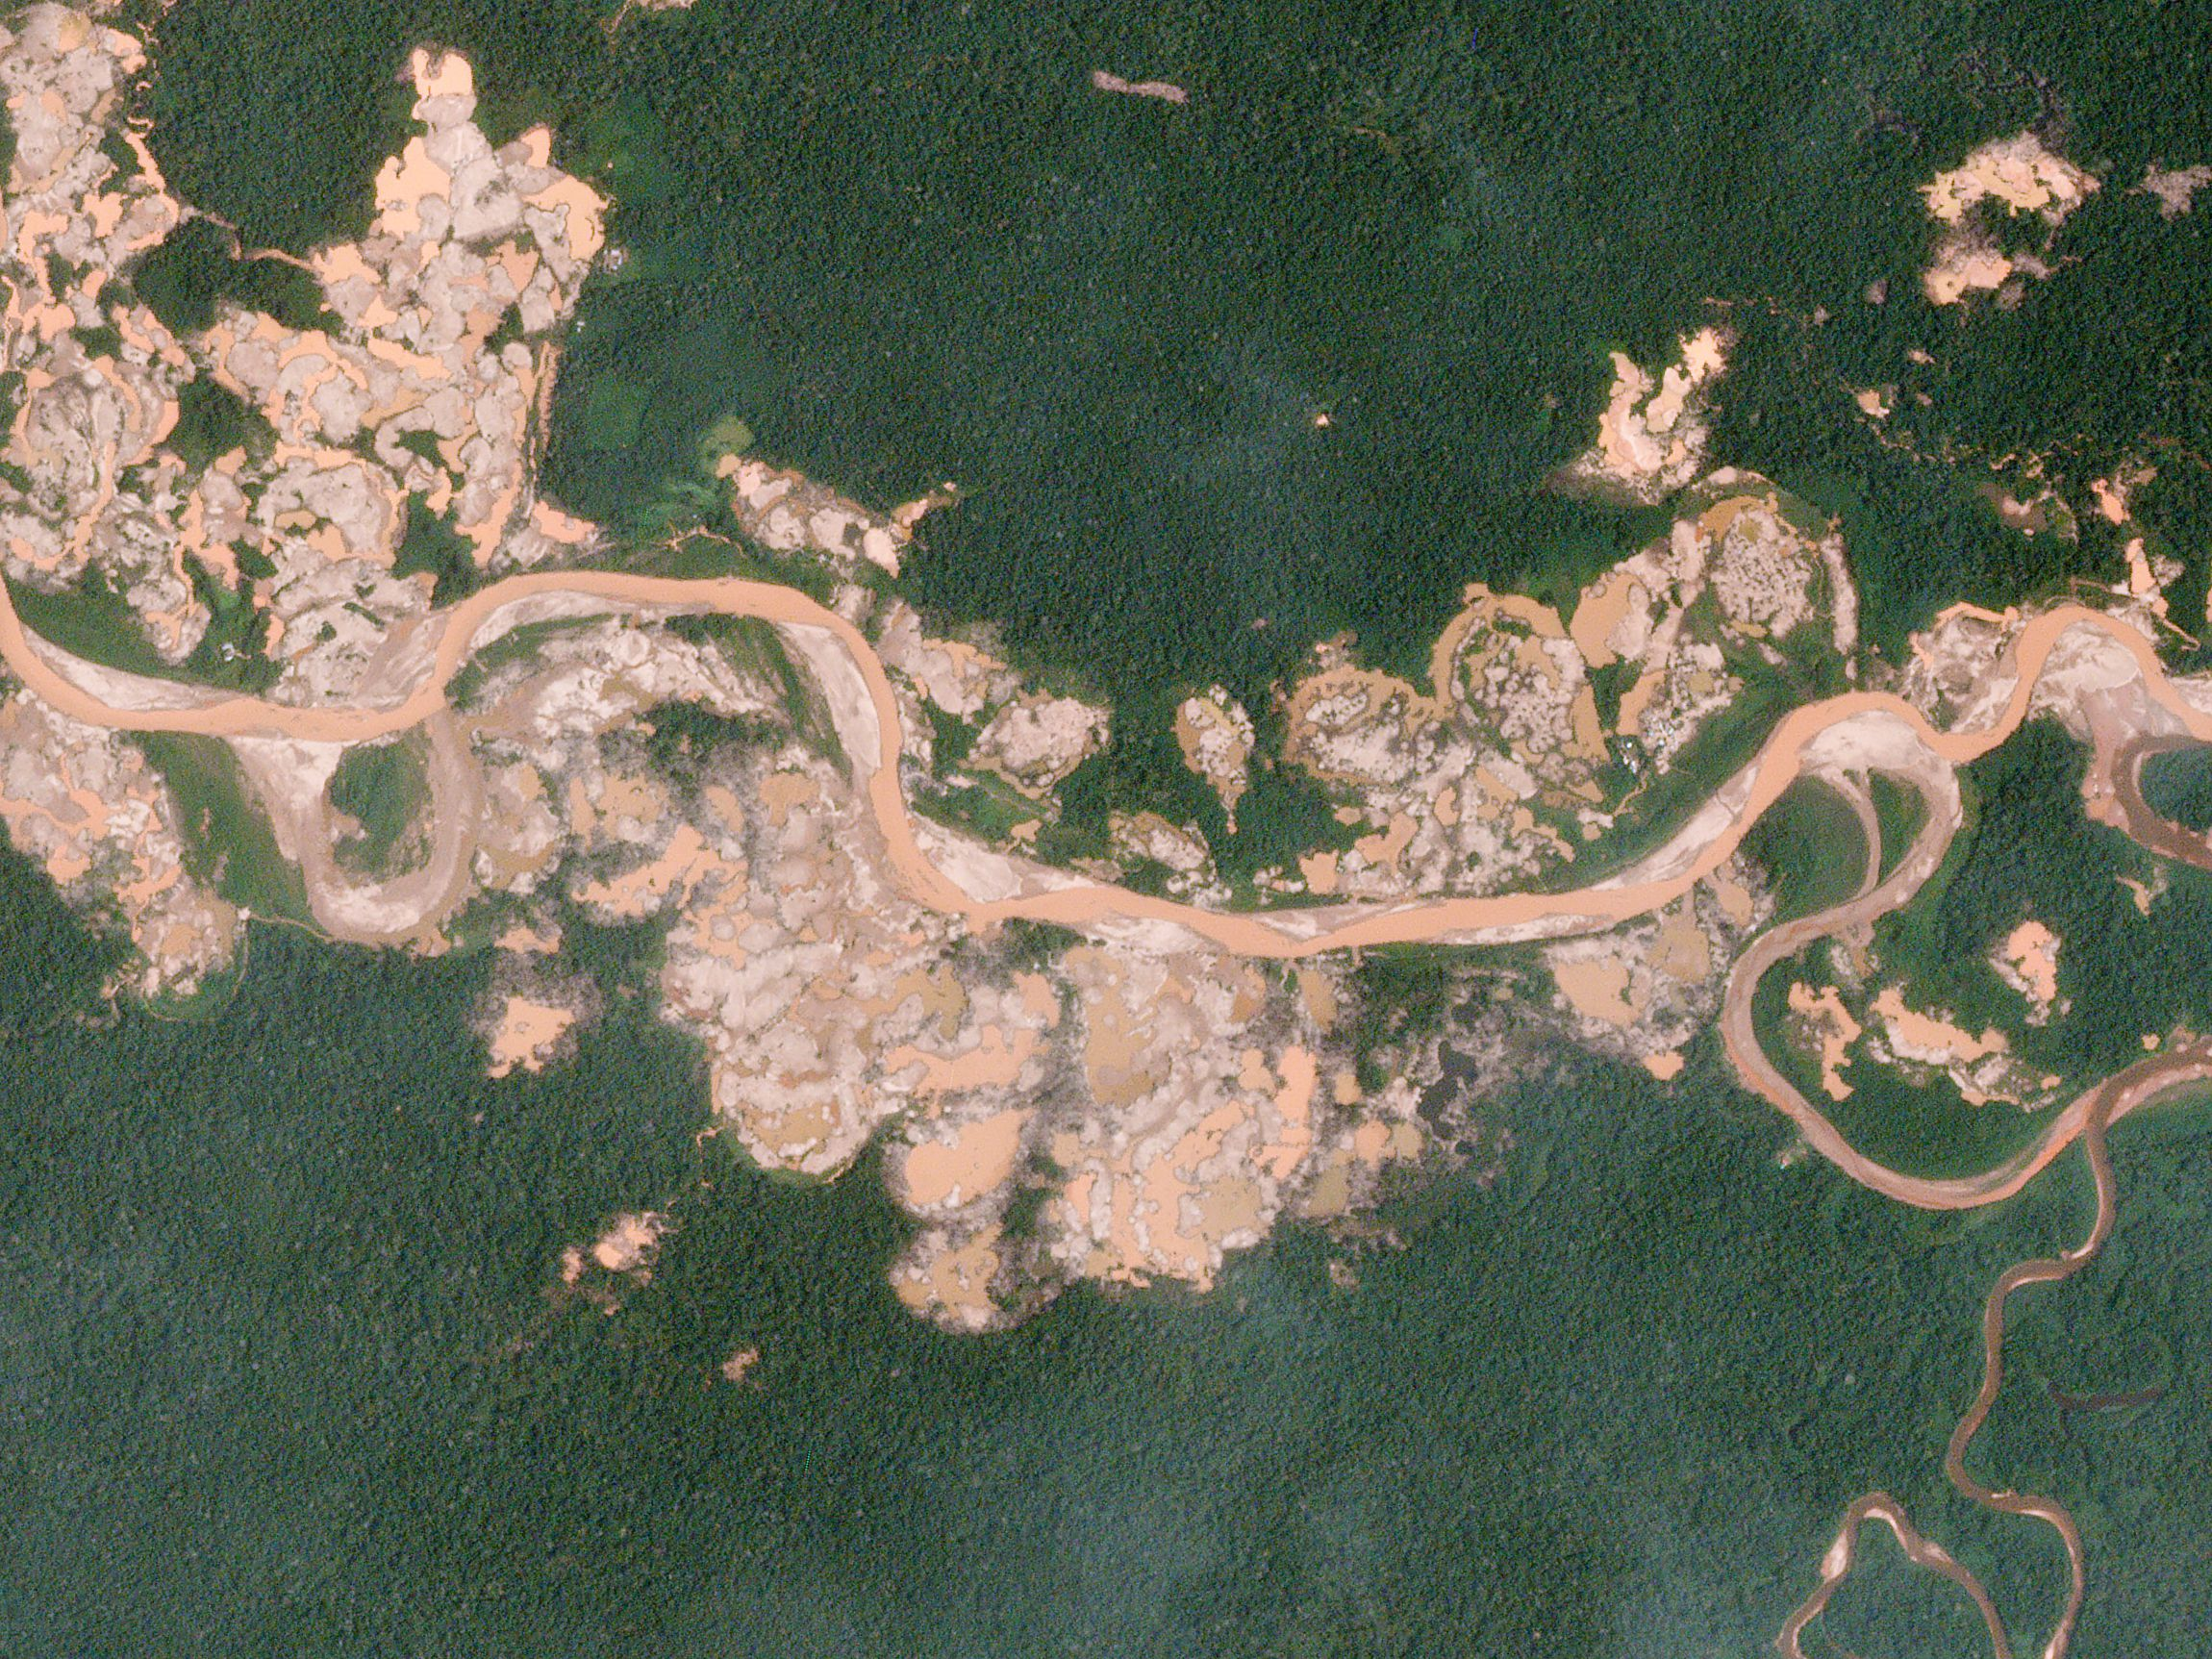 An image of La Pampa, Peru, an active mining site